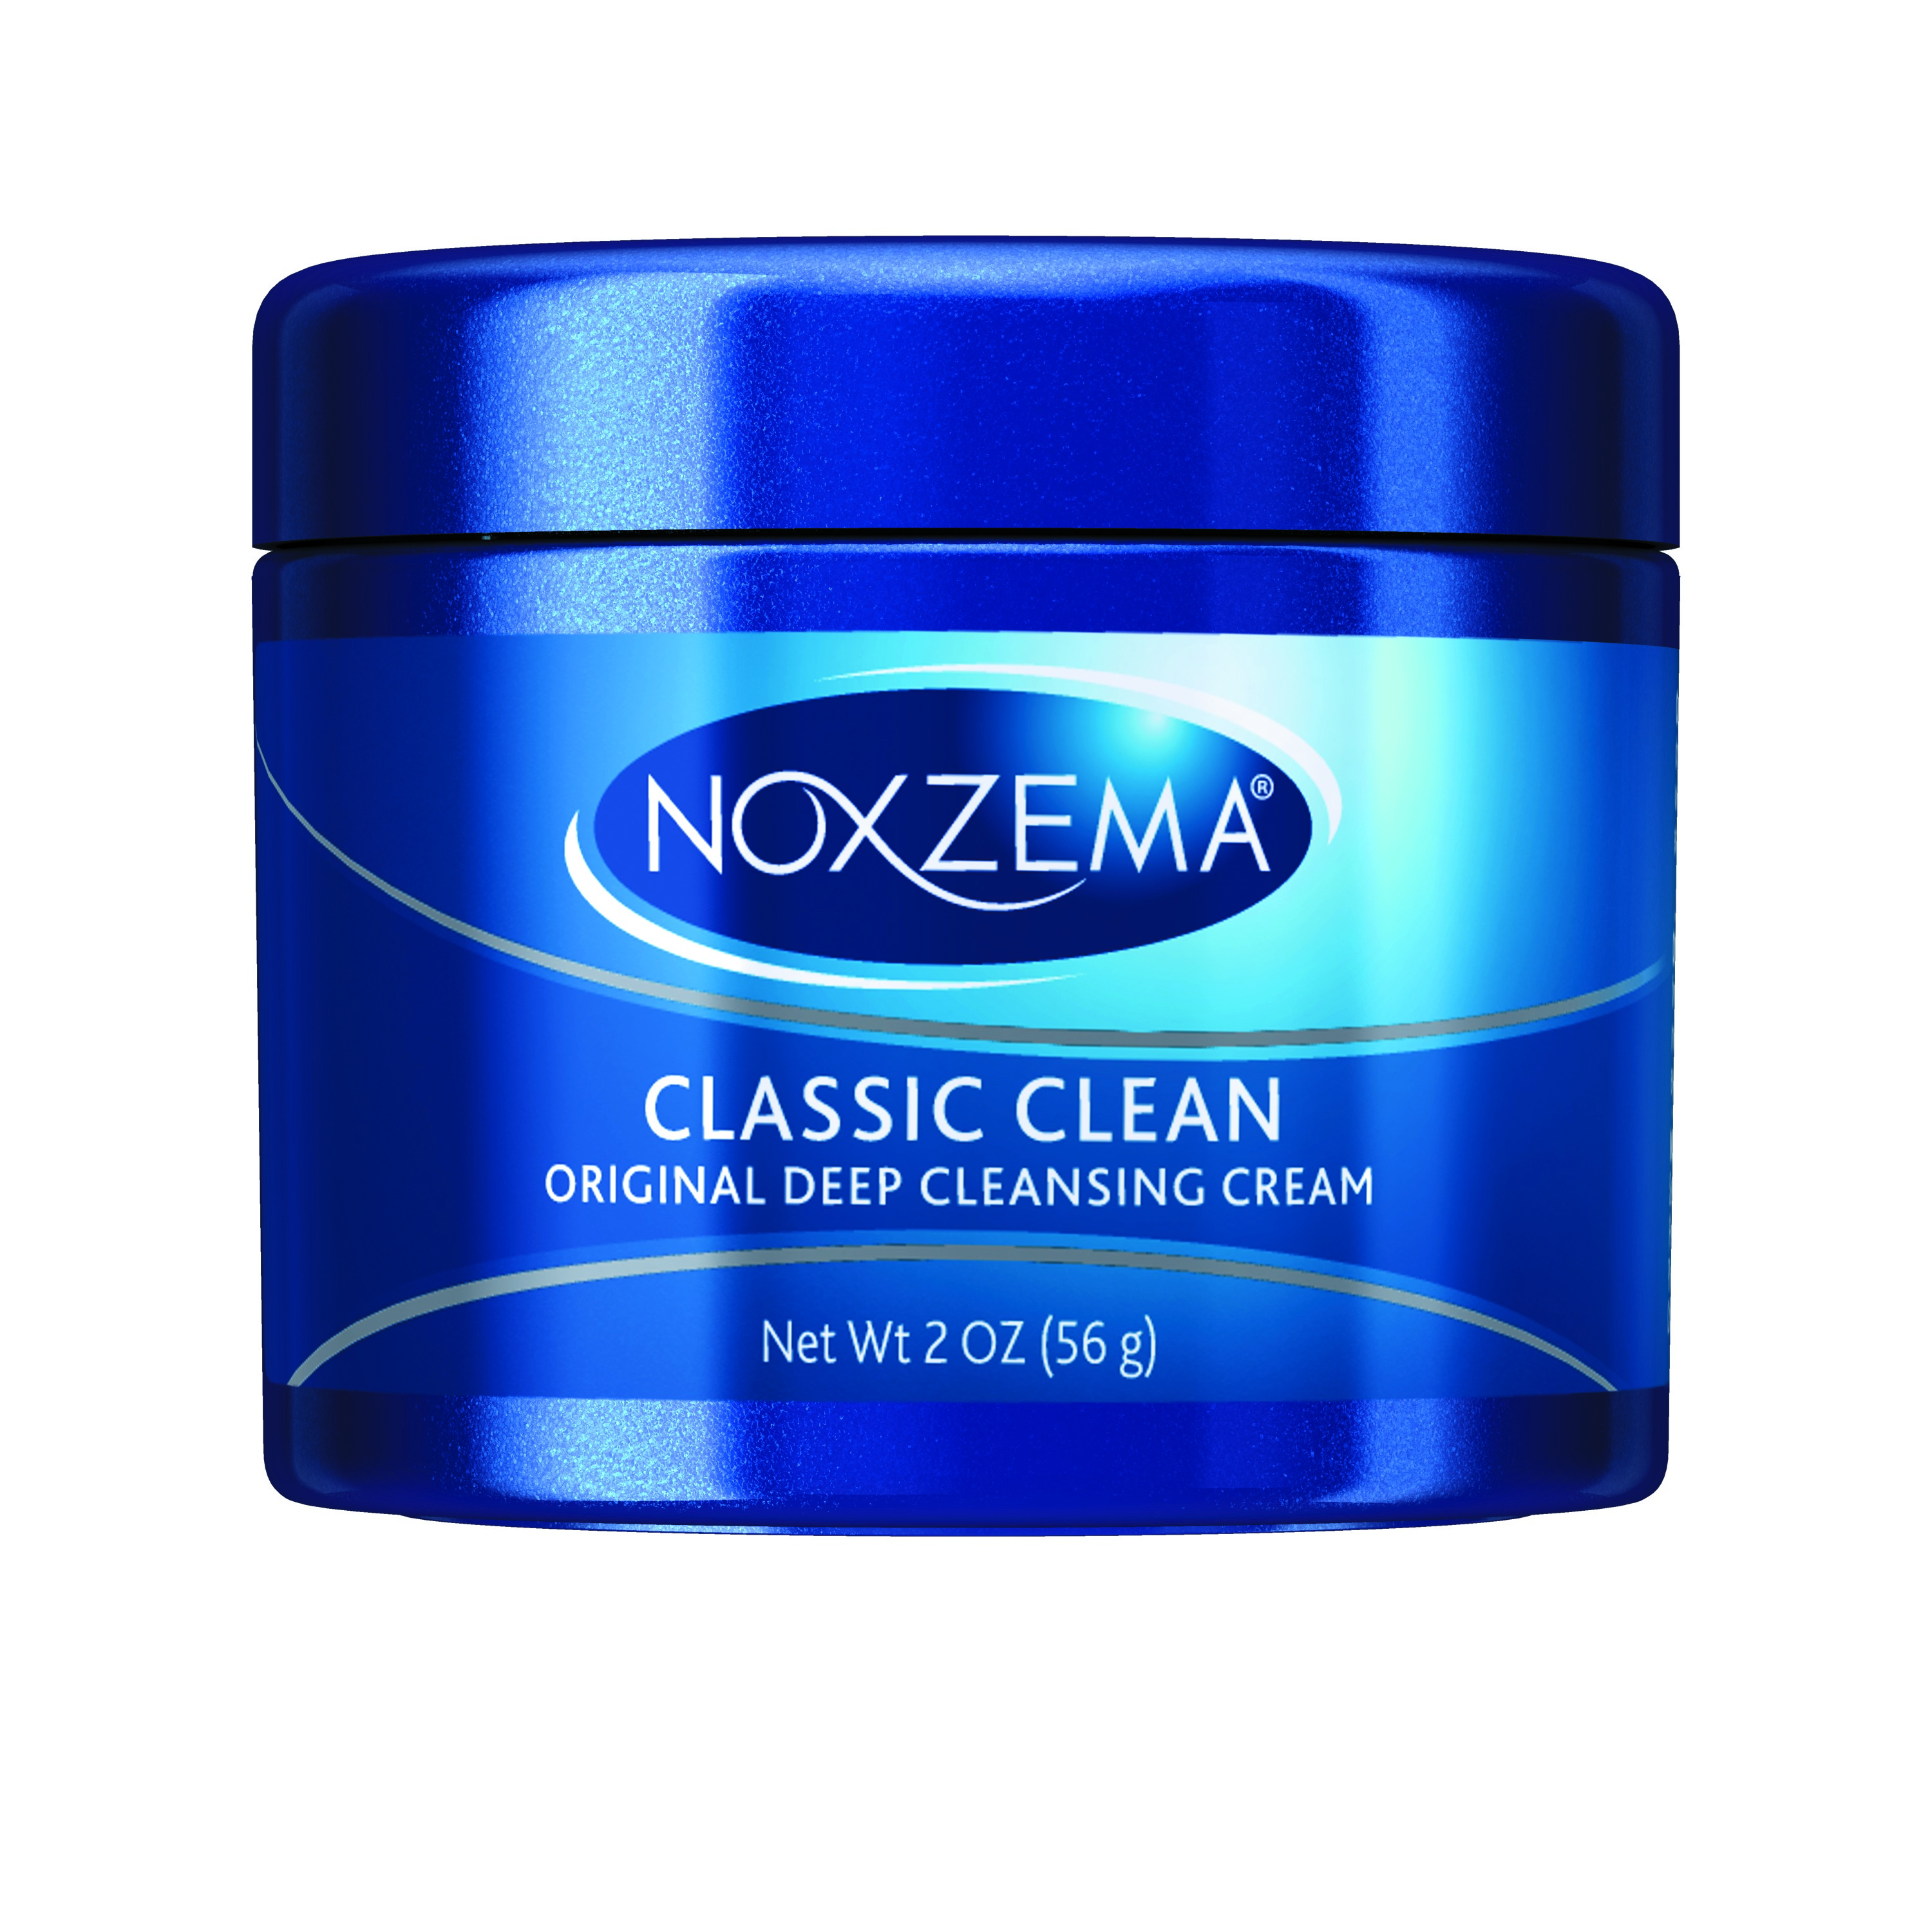 How To Use Noxzema >> Noxzema Classic Clean Original Deep Cleansing Cleanser 2 Oz